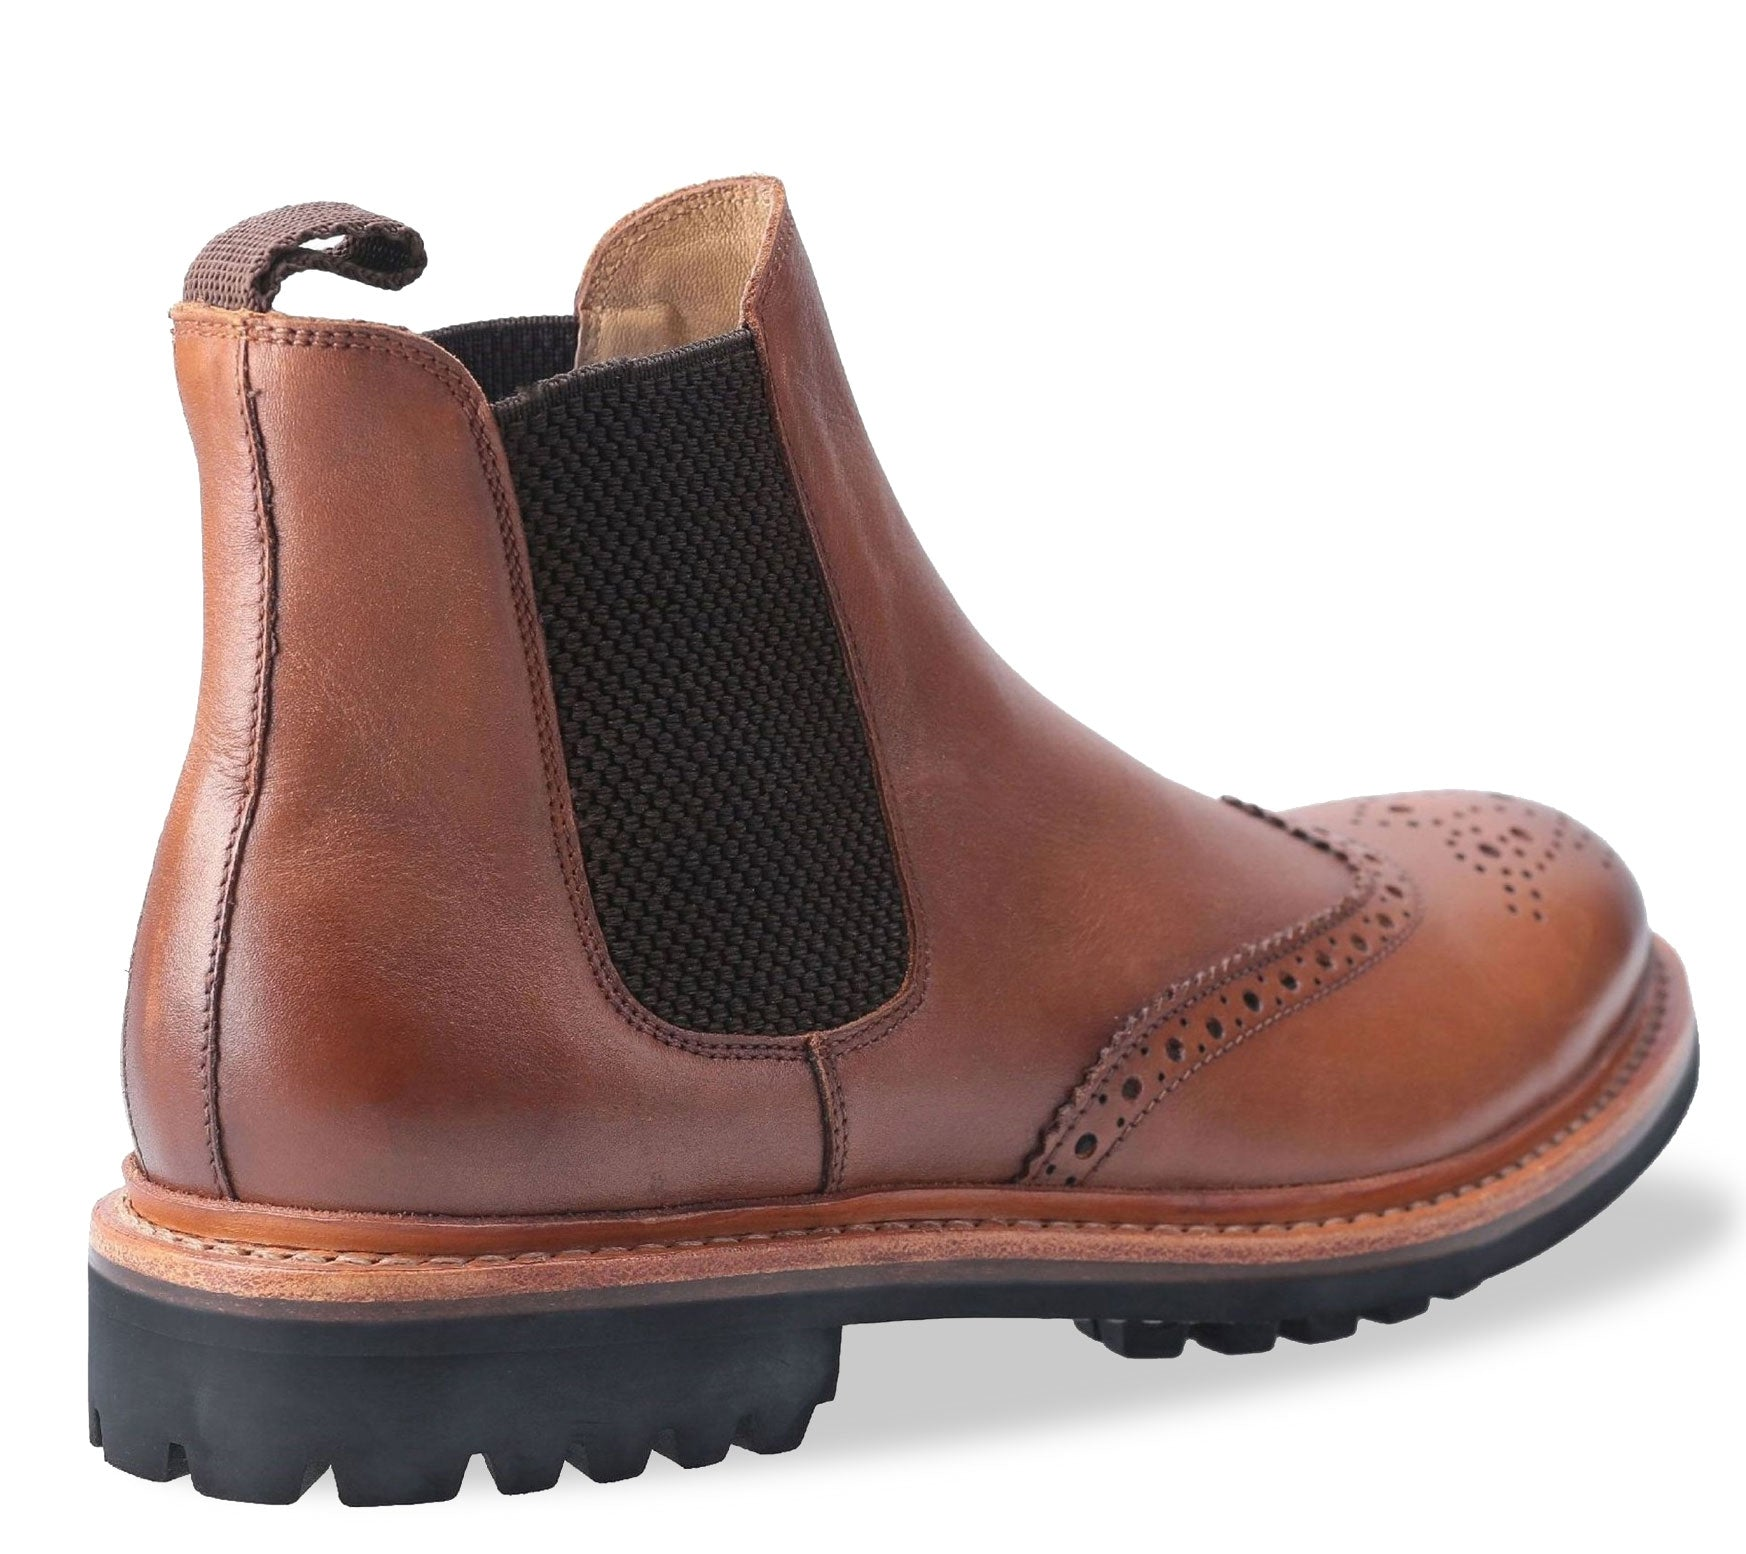 Elastic gusset Cotswold Leather Goodyear Welt Commando Sole Brogue Market Boot